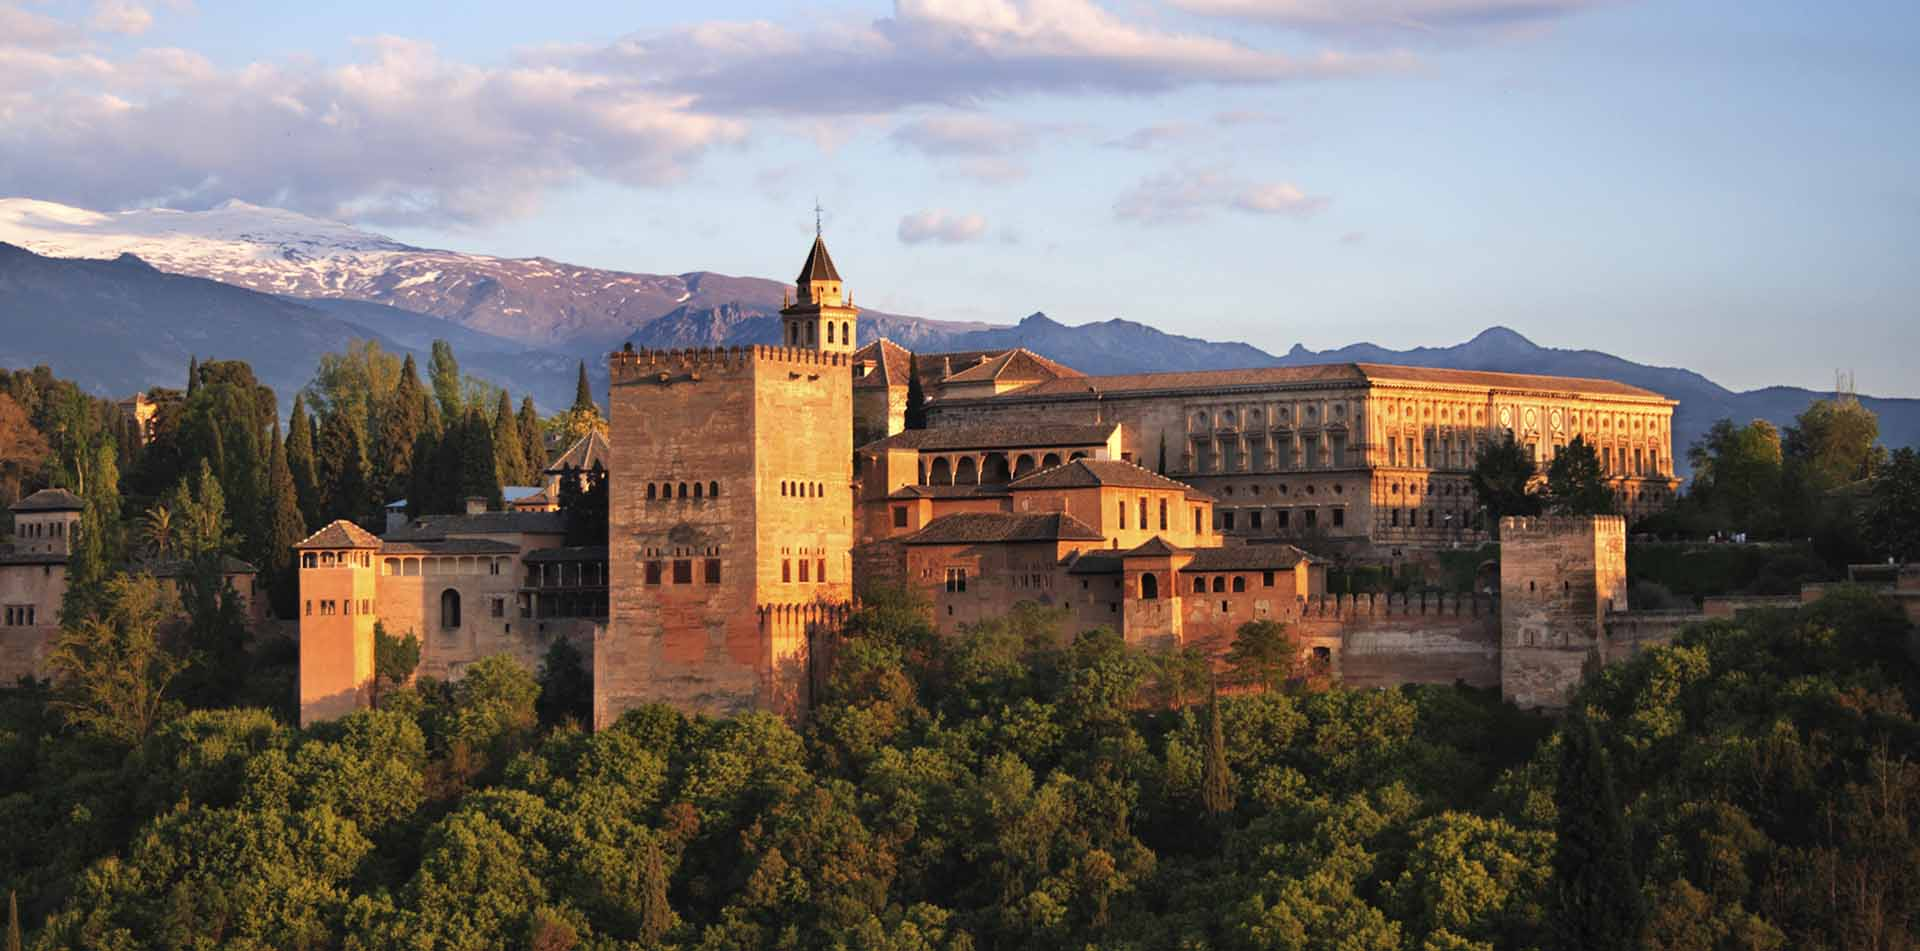 Europe Spain Andalucia Granada The Alhambra exterior view at sunset - luxury vacation destinations